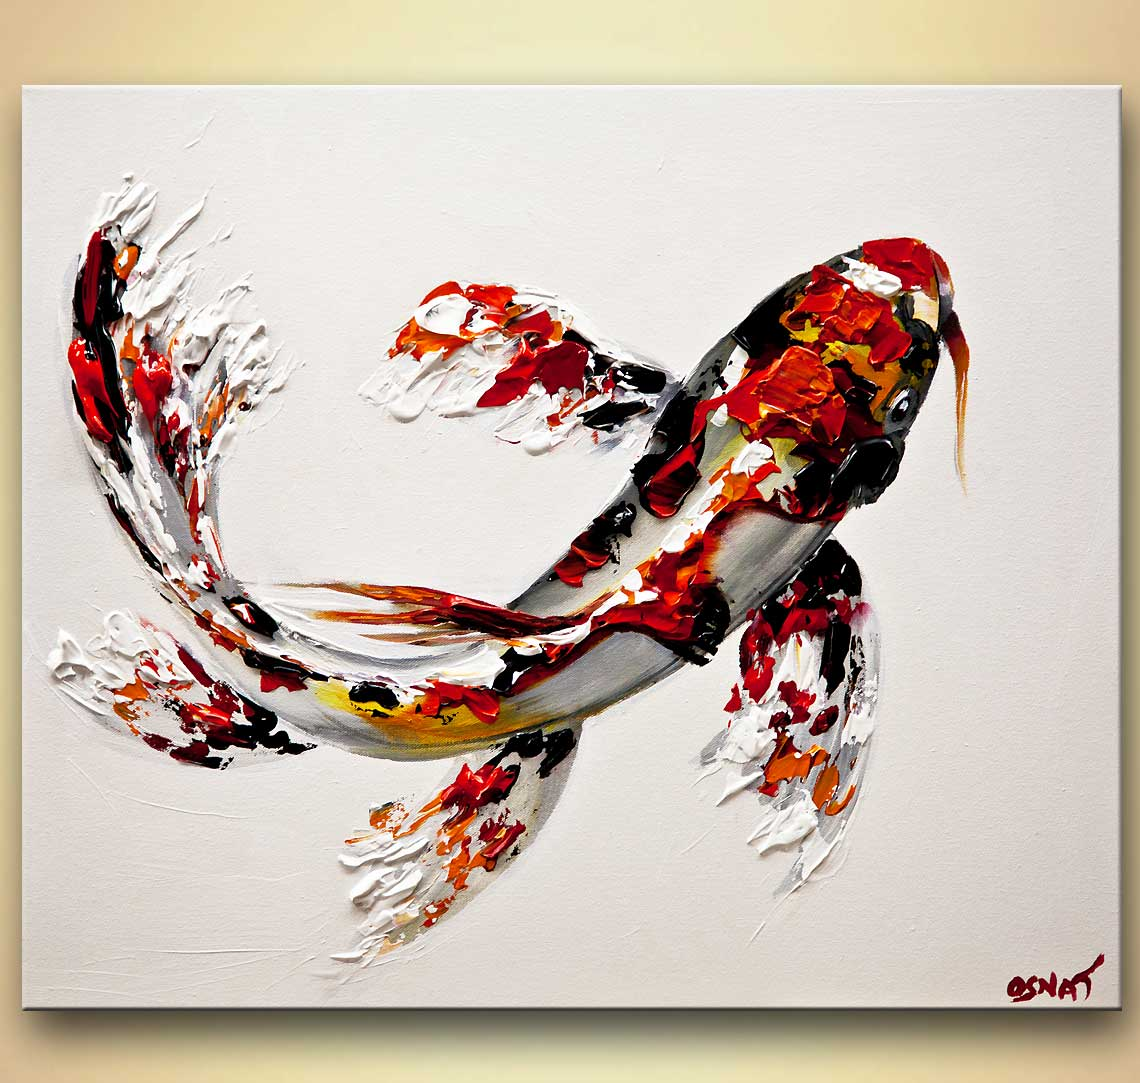 Painting - koi fish painting textured #8016